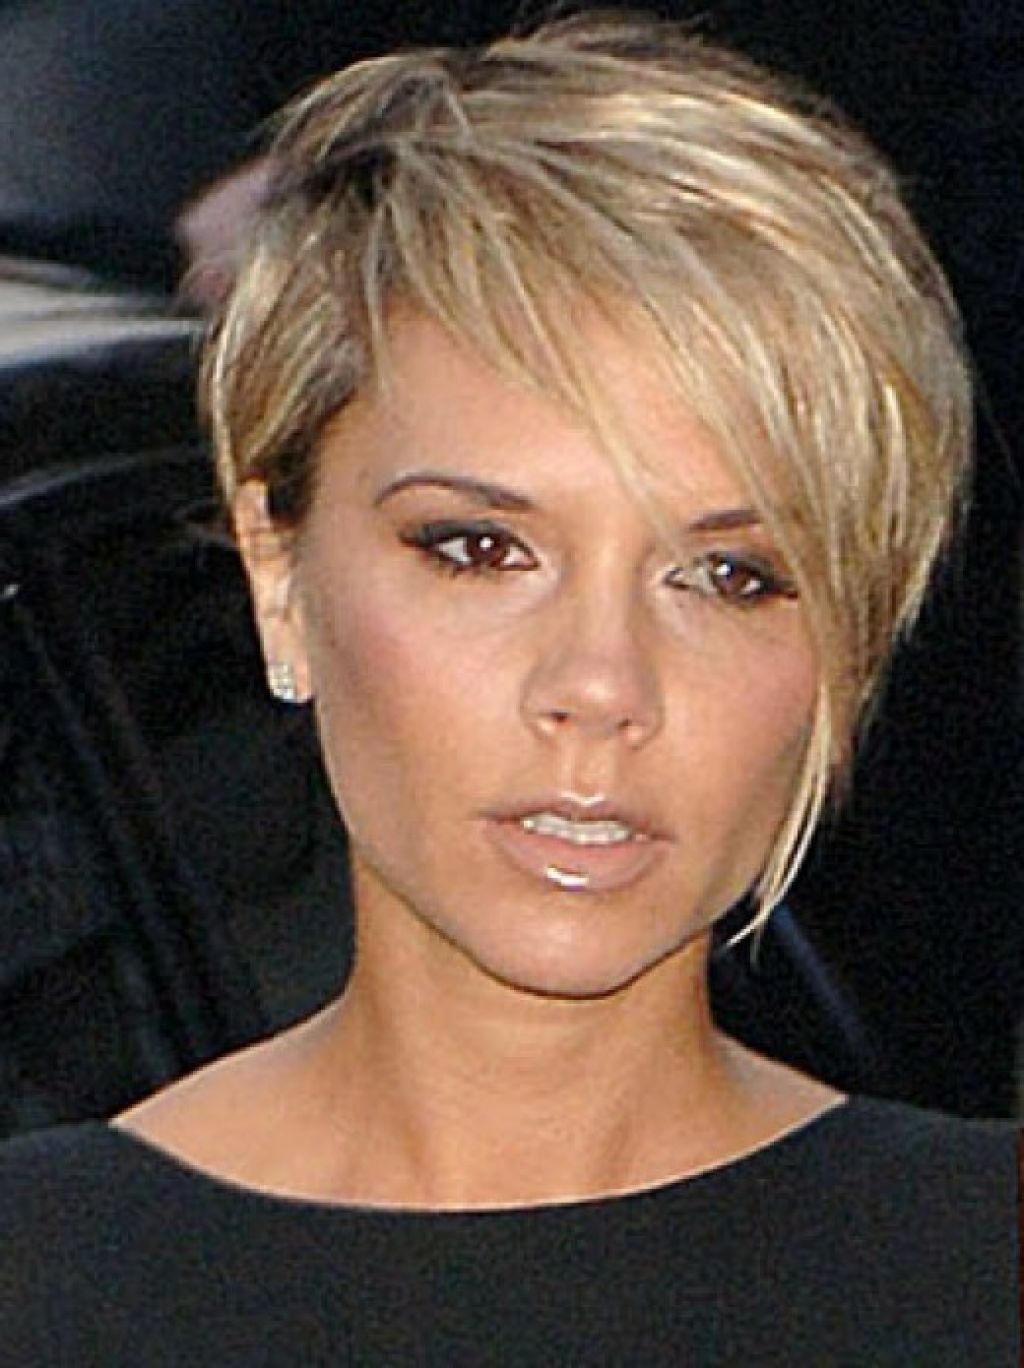 I.b Coiffure Victoria Beckham Pixie Cut Blonde Google Search